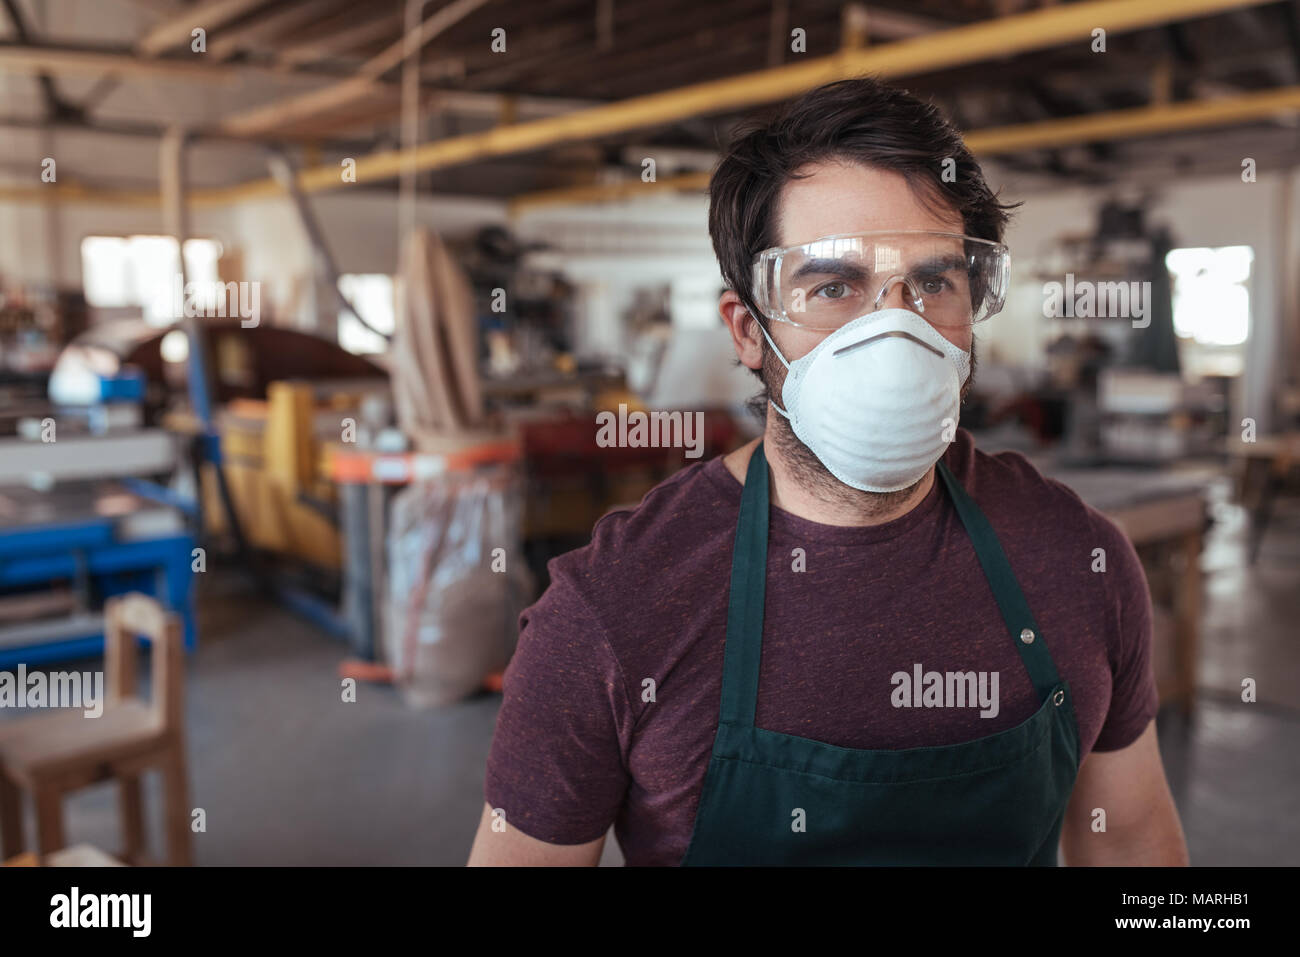 Young woodworker standing alone in his workshop wearing protective gear - Stock Image